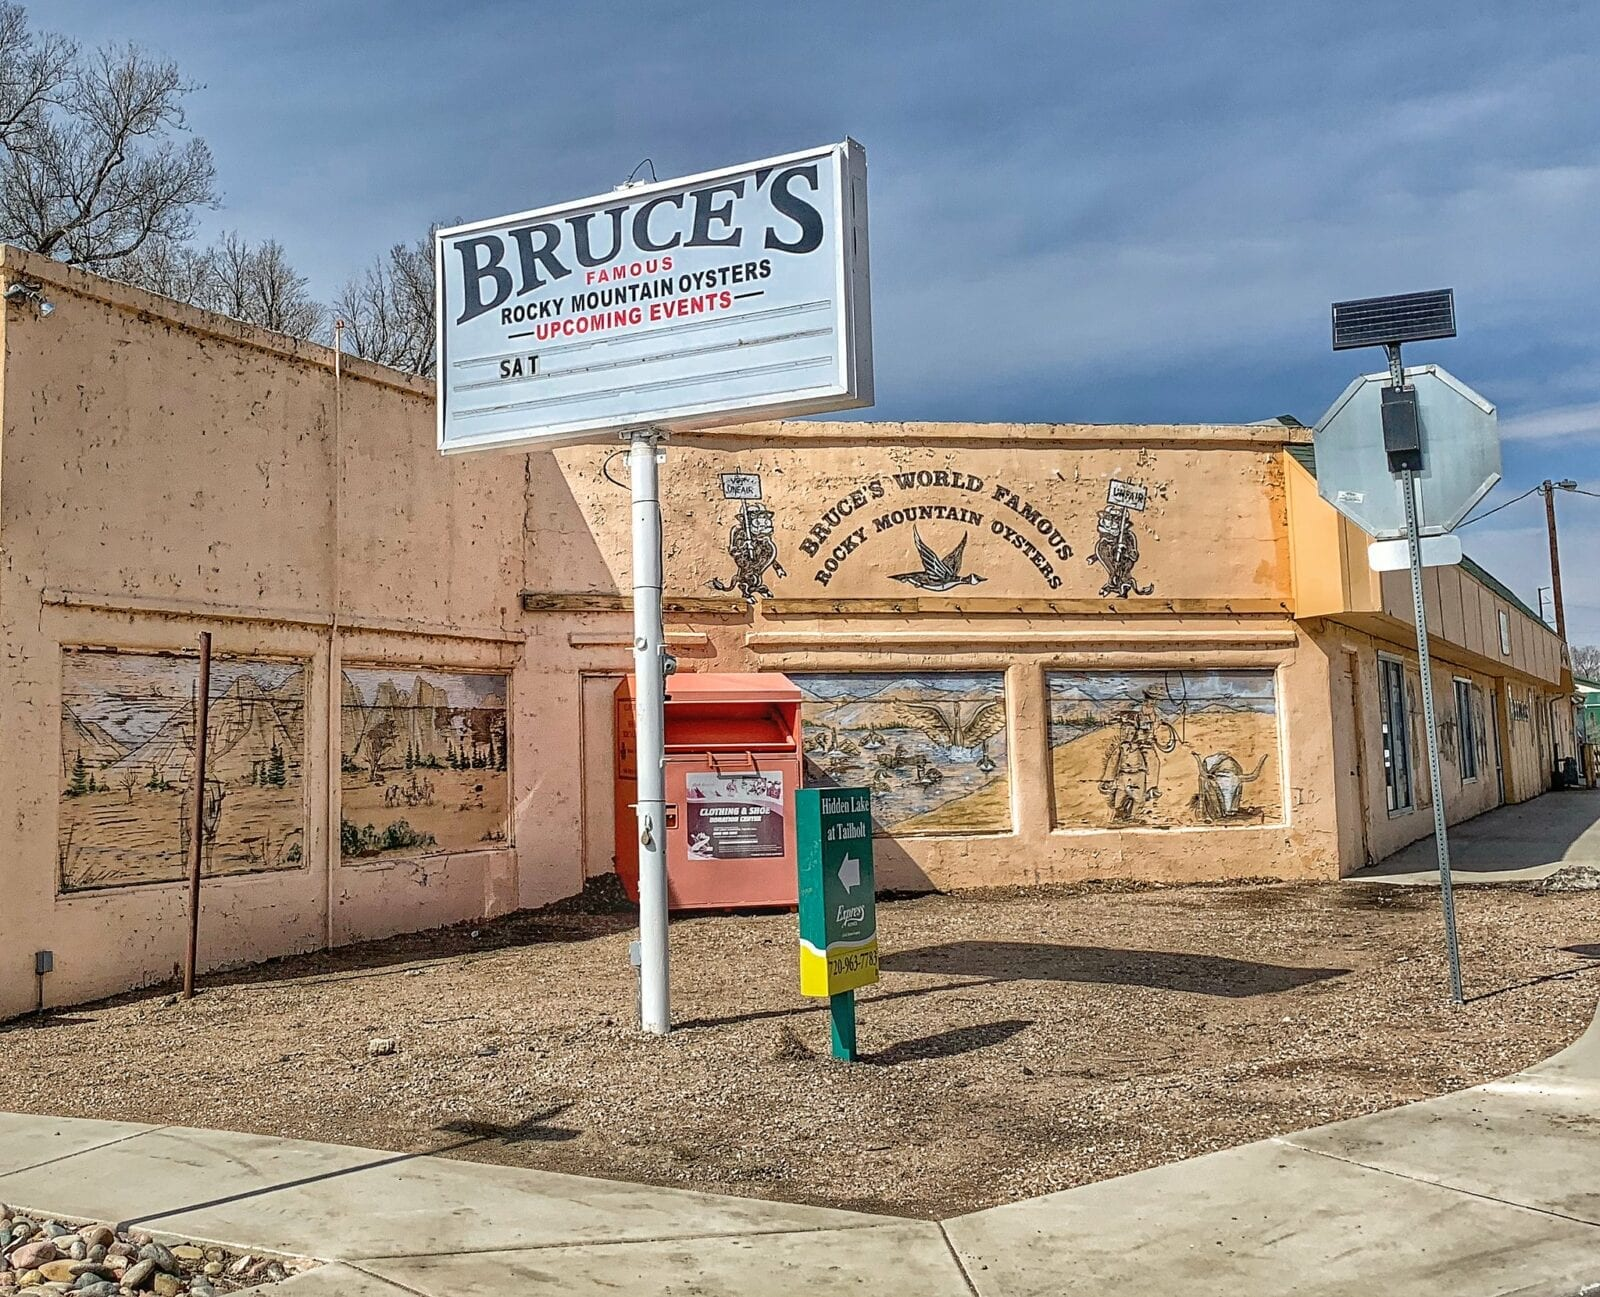 image of Bruce's bar